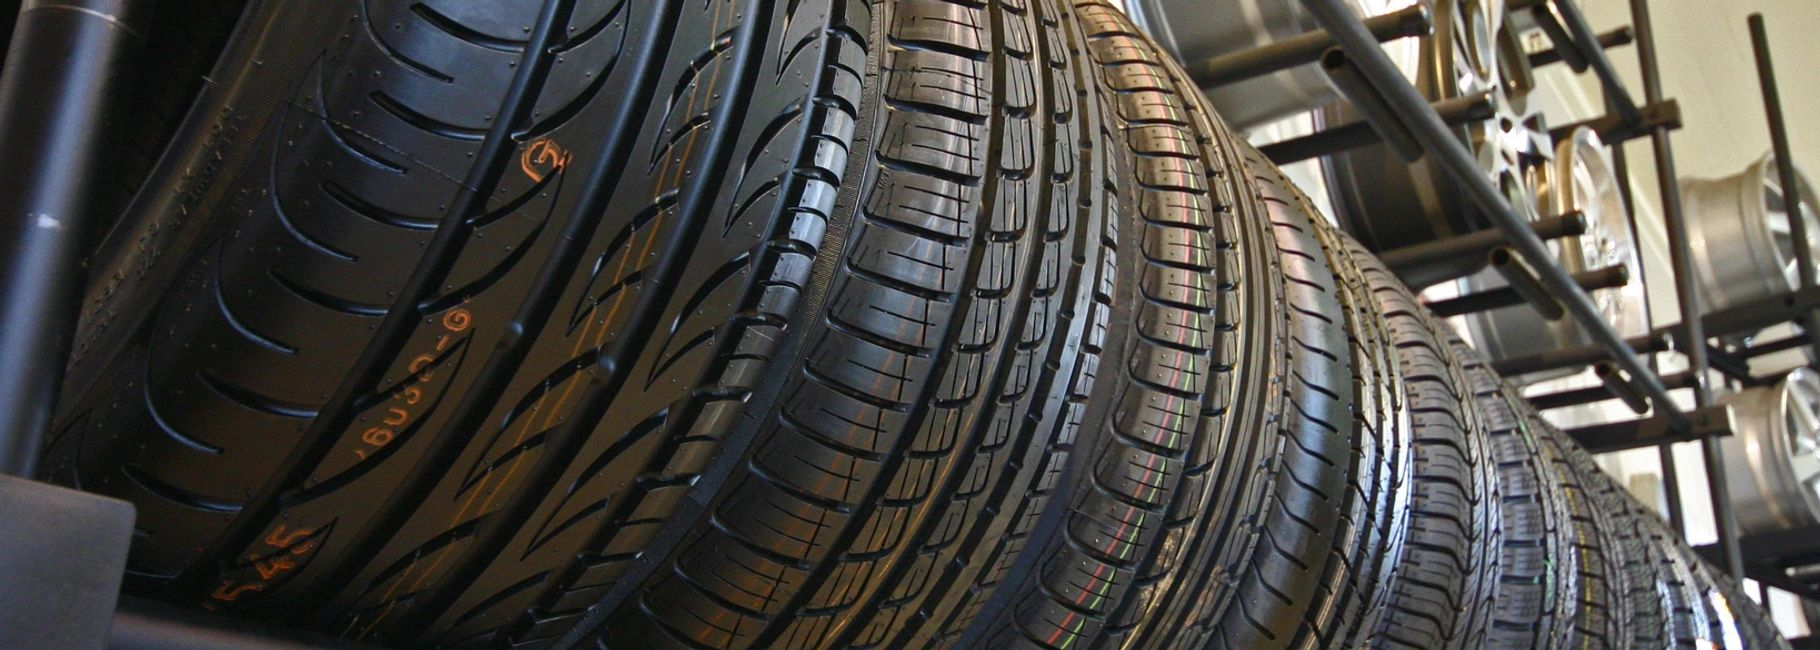 New tyres, Puncture repair, tyres, tires, Car Tire Replacement auckland, tyre shop auckland